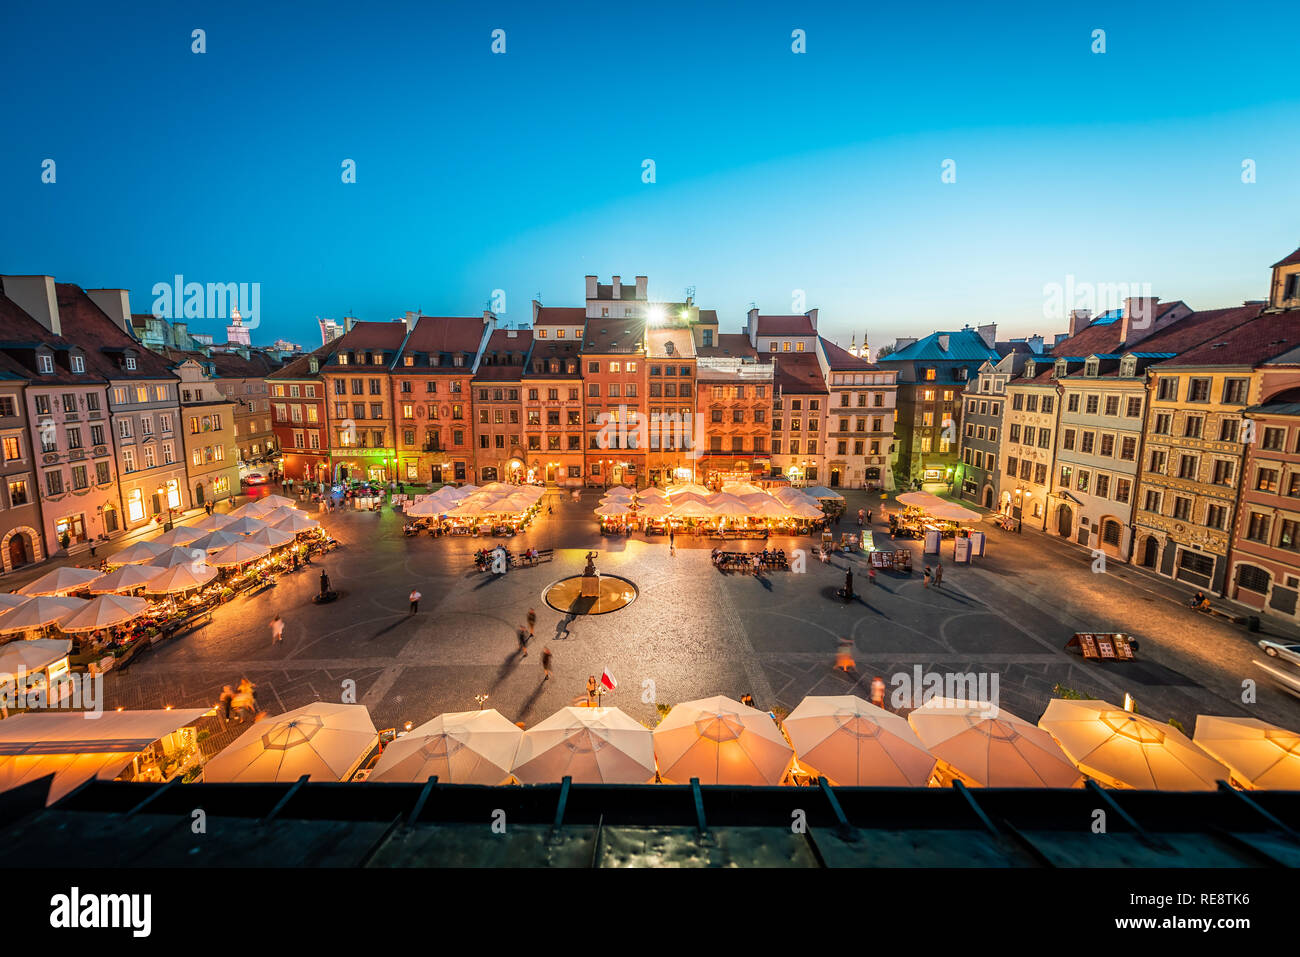 Warsaw, Poland - August 22, 2018: Historic cityscape with high angle view of architecture rooftop buildings and dark sky in old town market square at  Stock Photo